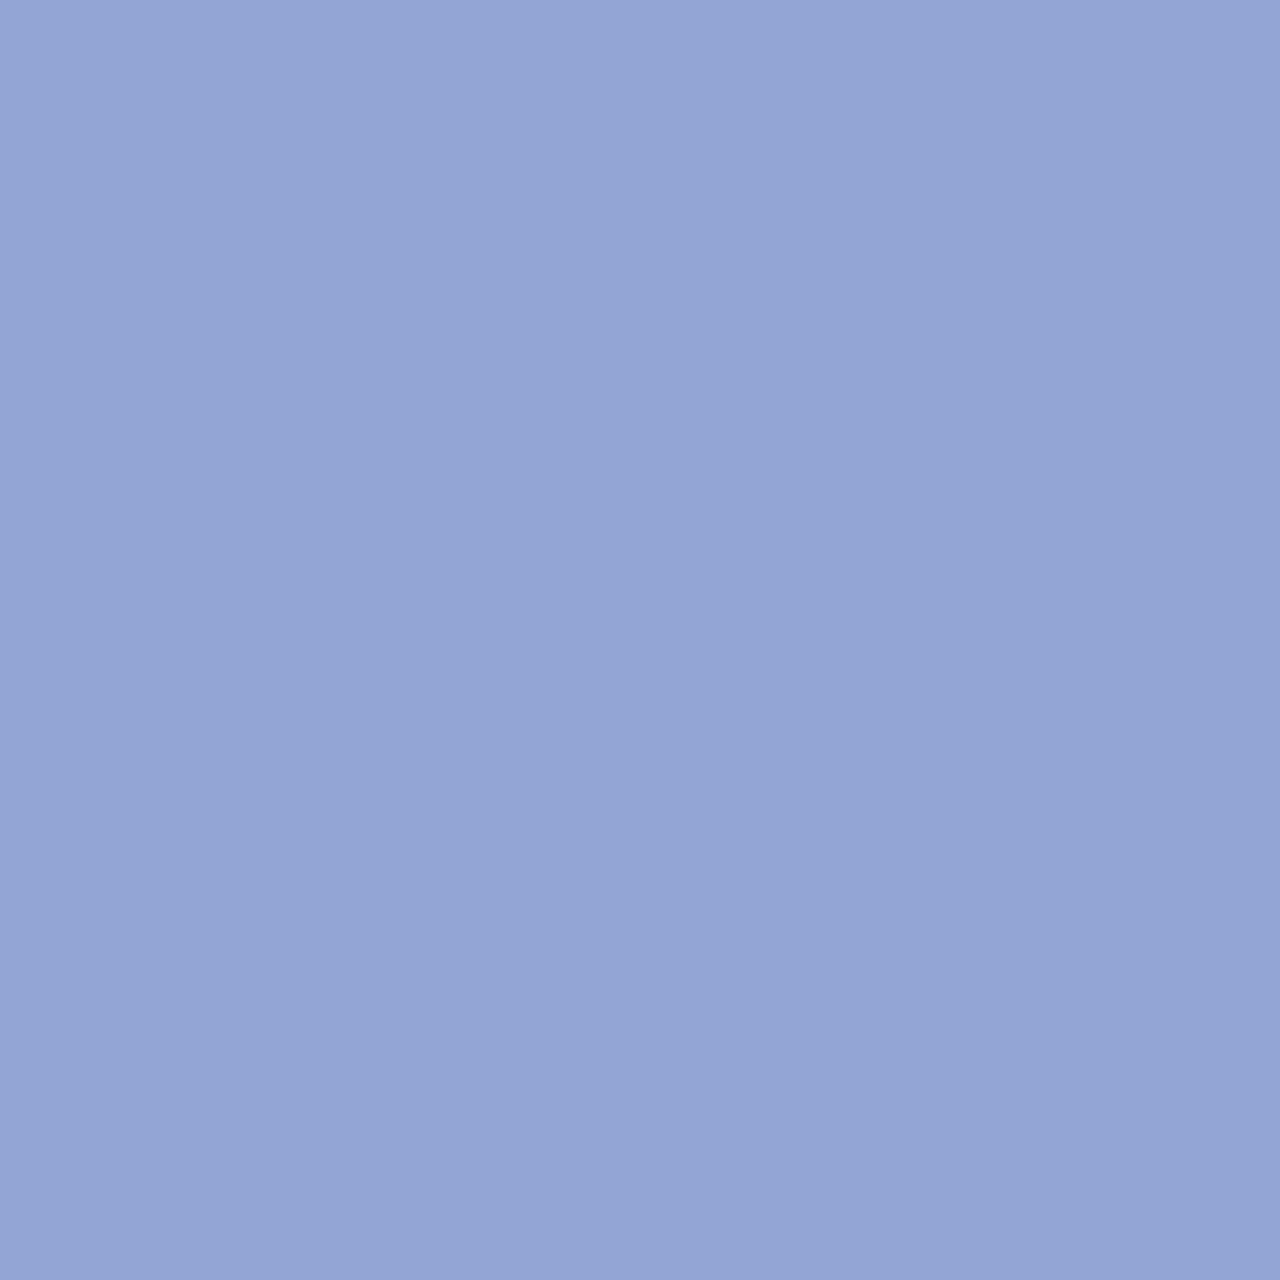 """#0054 Rosco Gels Roscolux Special Lavender, 20x24"""""""